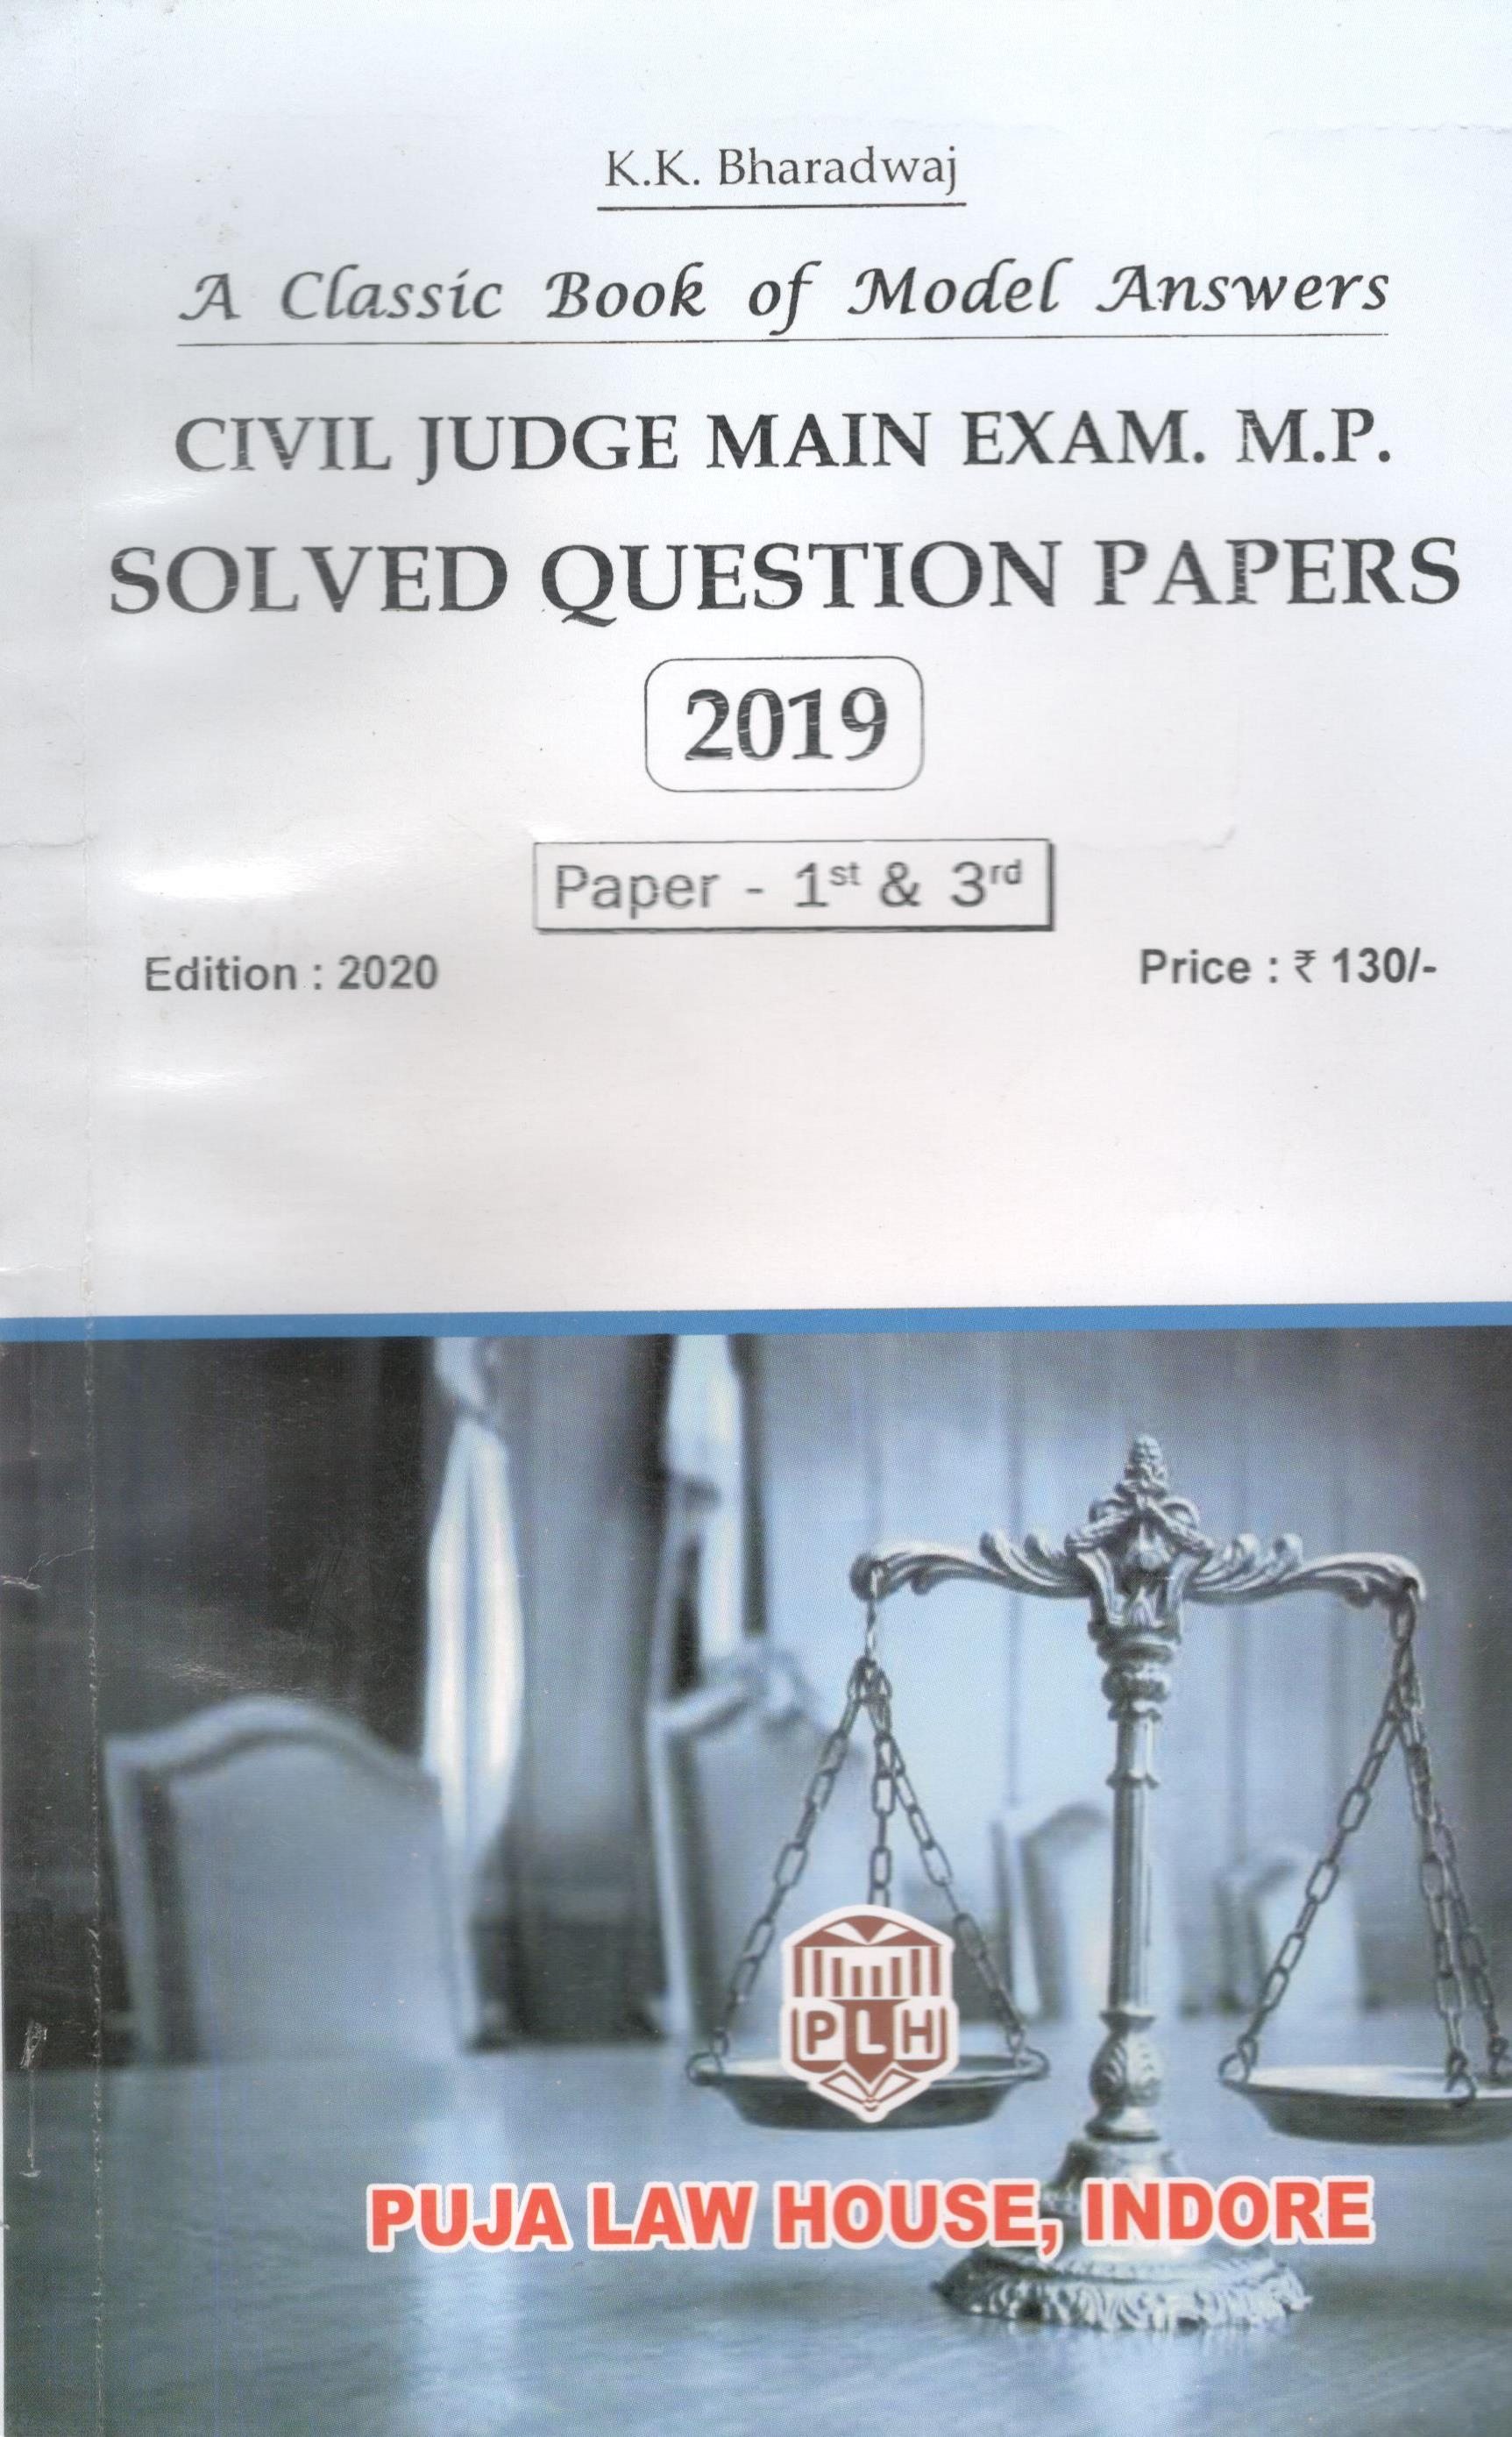 Civil Judge Main Exam M.P. Solved Question Paper 2019